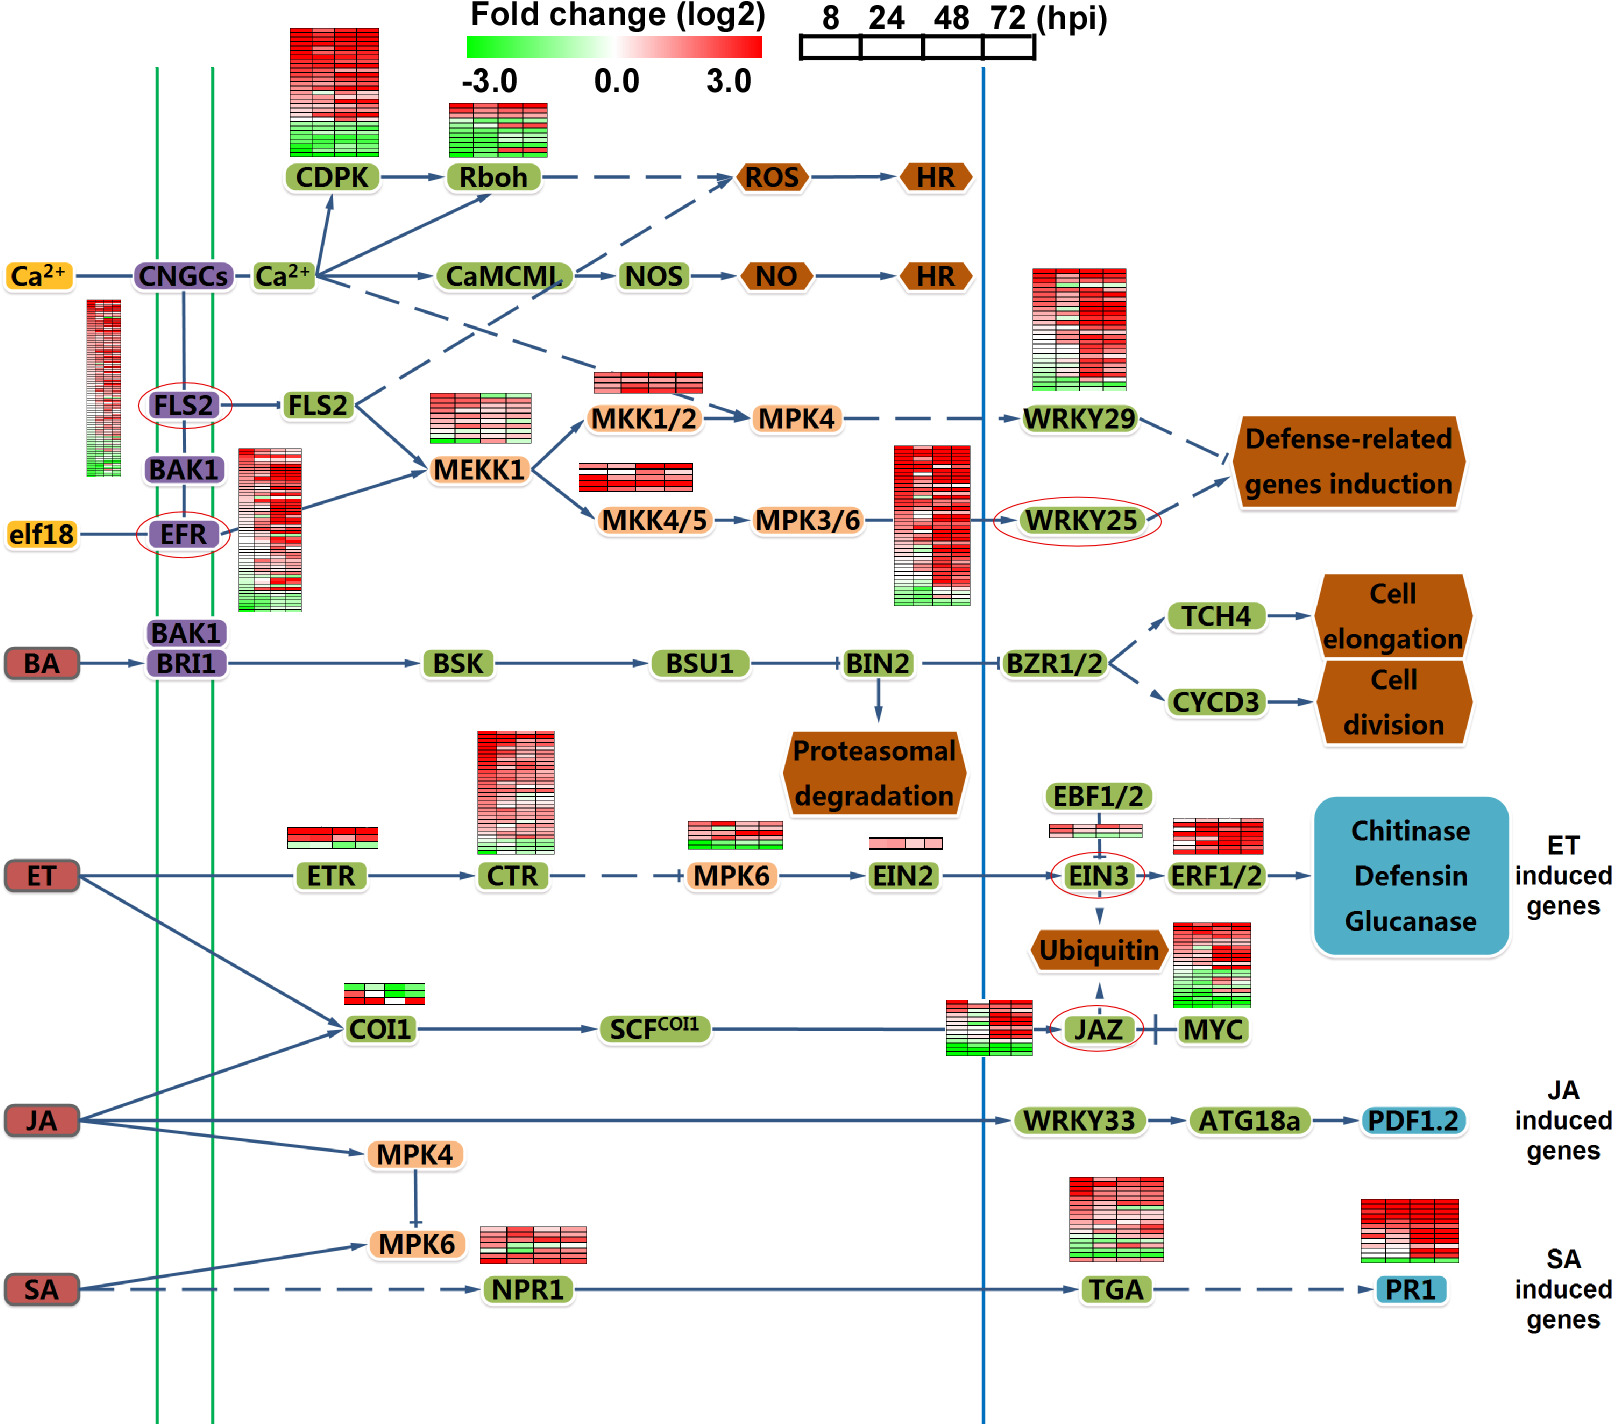 Analysis of different signal pathways gene expression in rice.